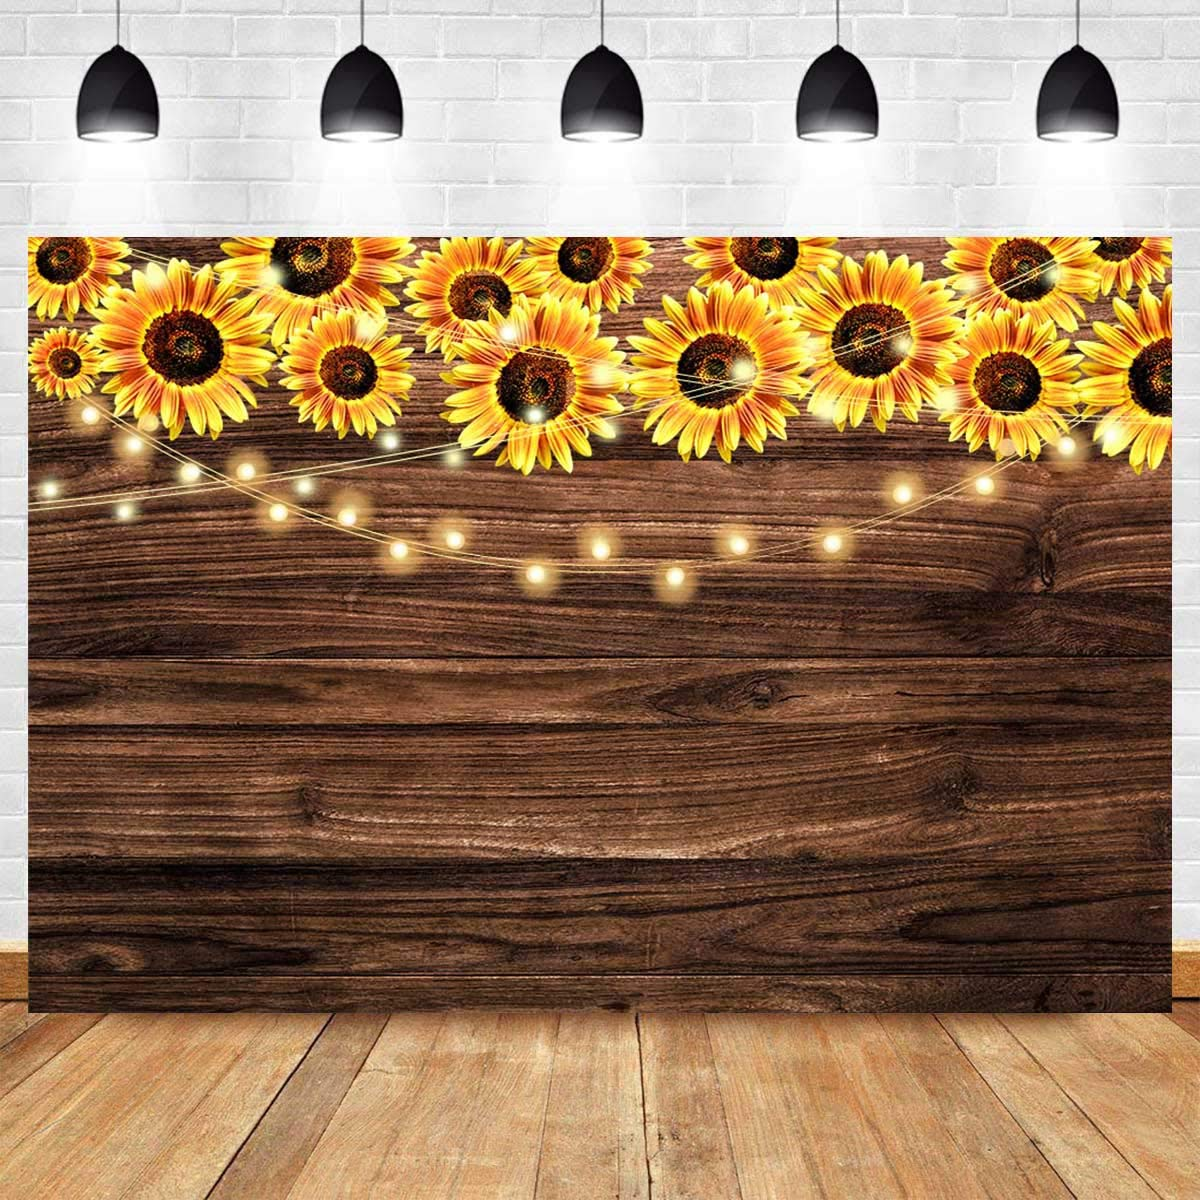 Fanghui 9x6ft Sunflower Wooden Floor Texture Backdrop Baby Shower Wedding Birthday Party Banner Decor Supplies Sunflower Theme Party Photography Background Photo Booth Props